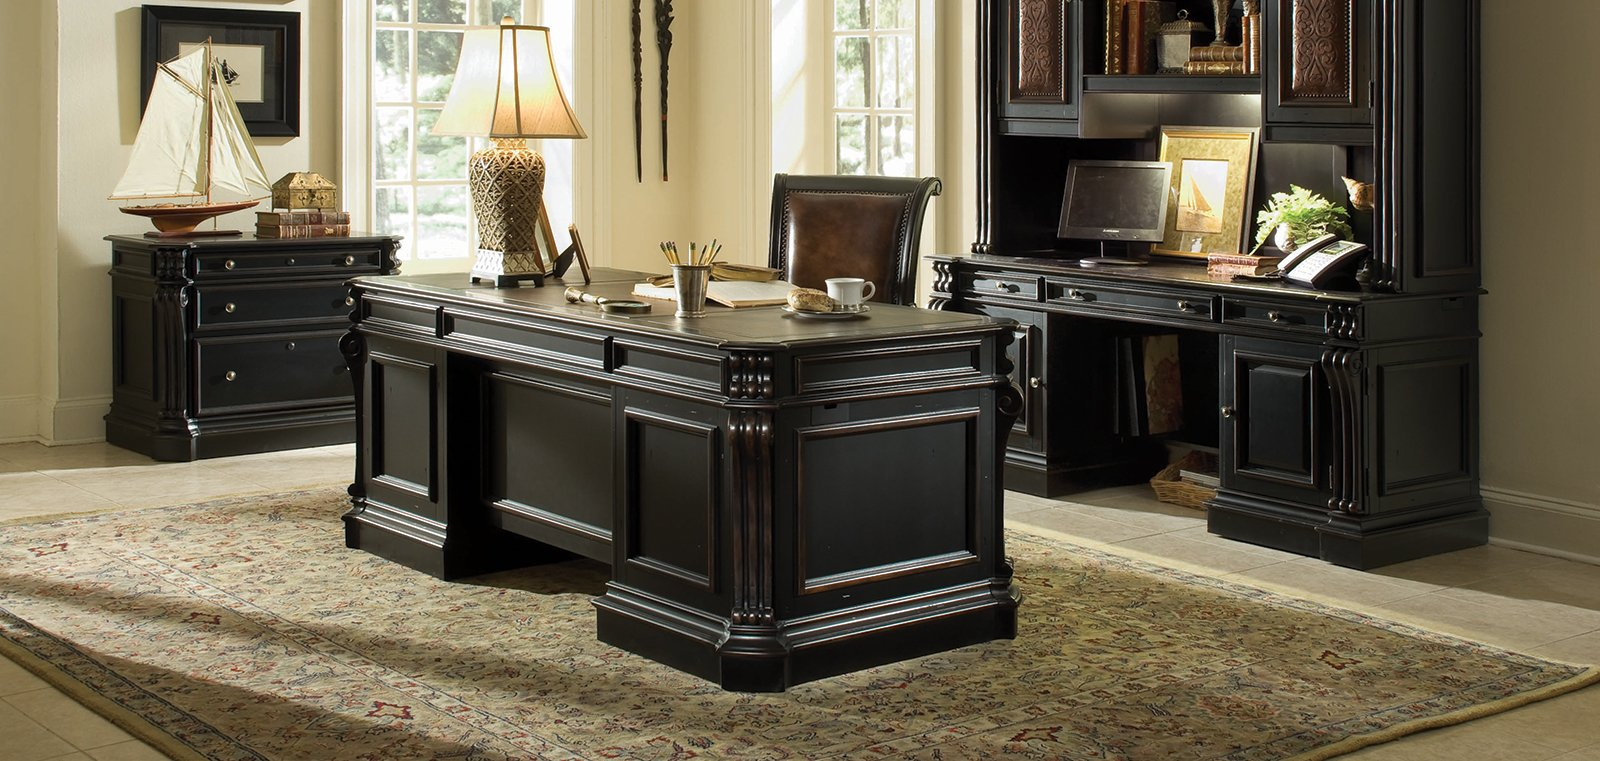 Knox Furniture Home And Office Furnishings Neenah Wi